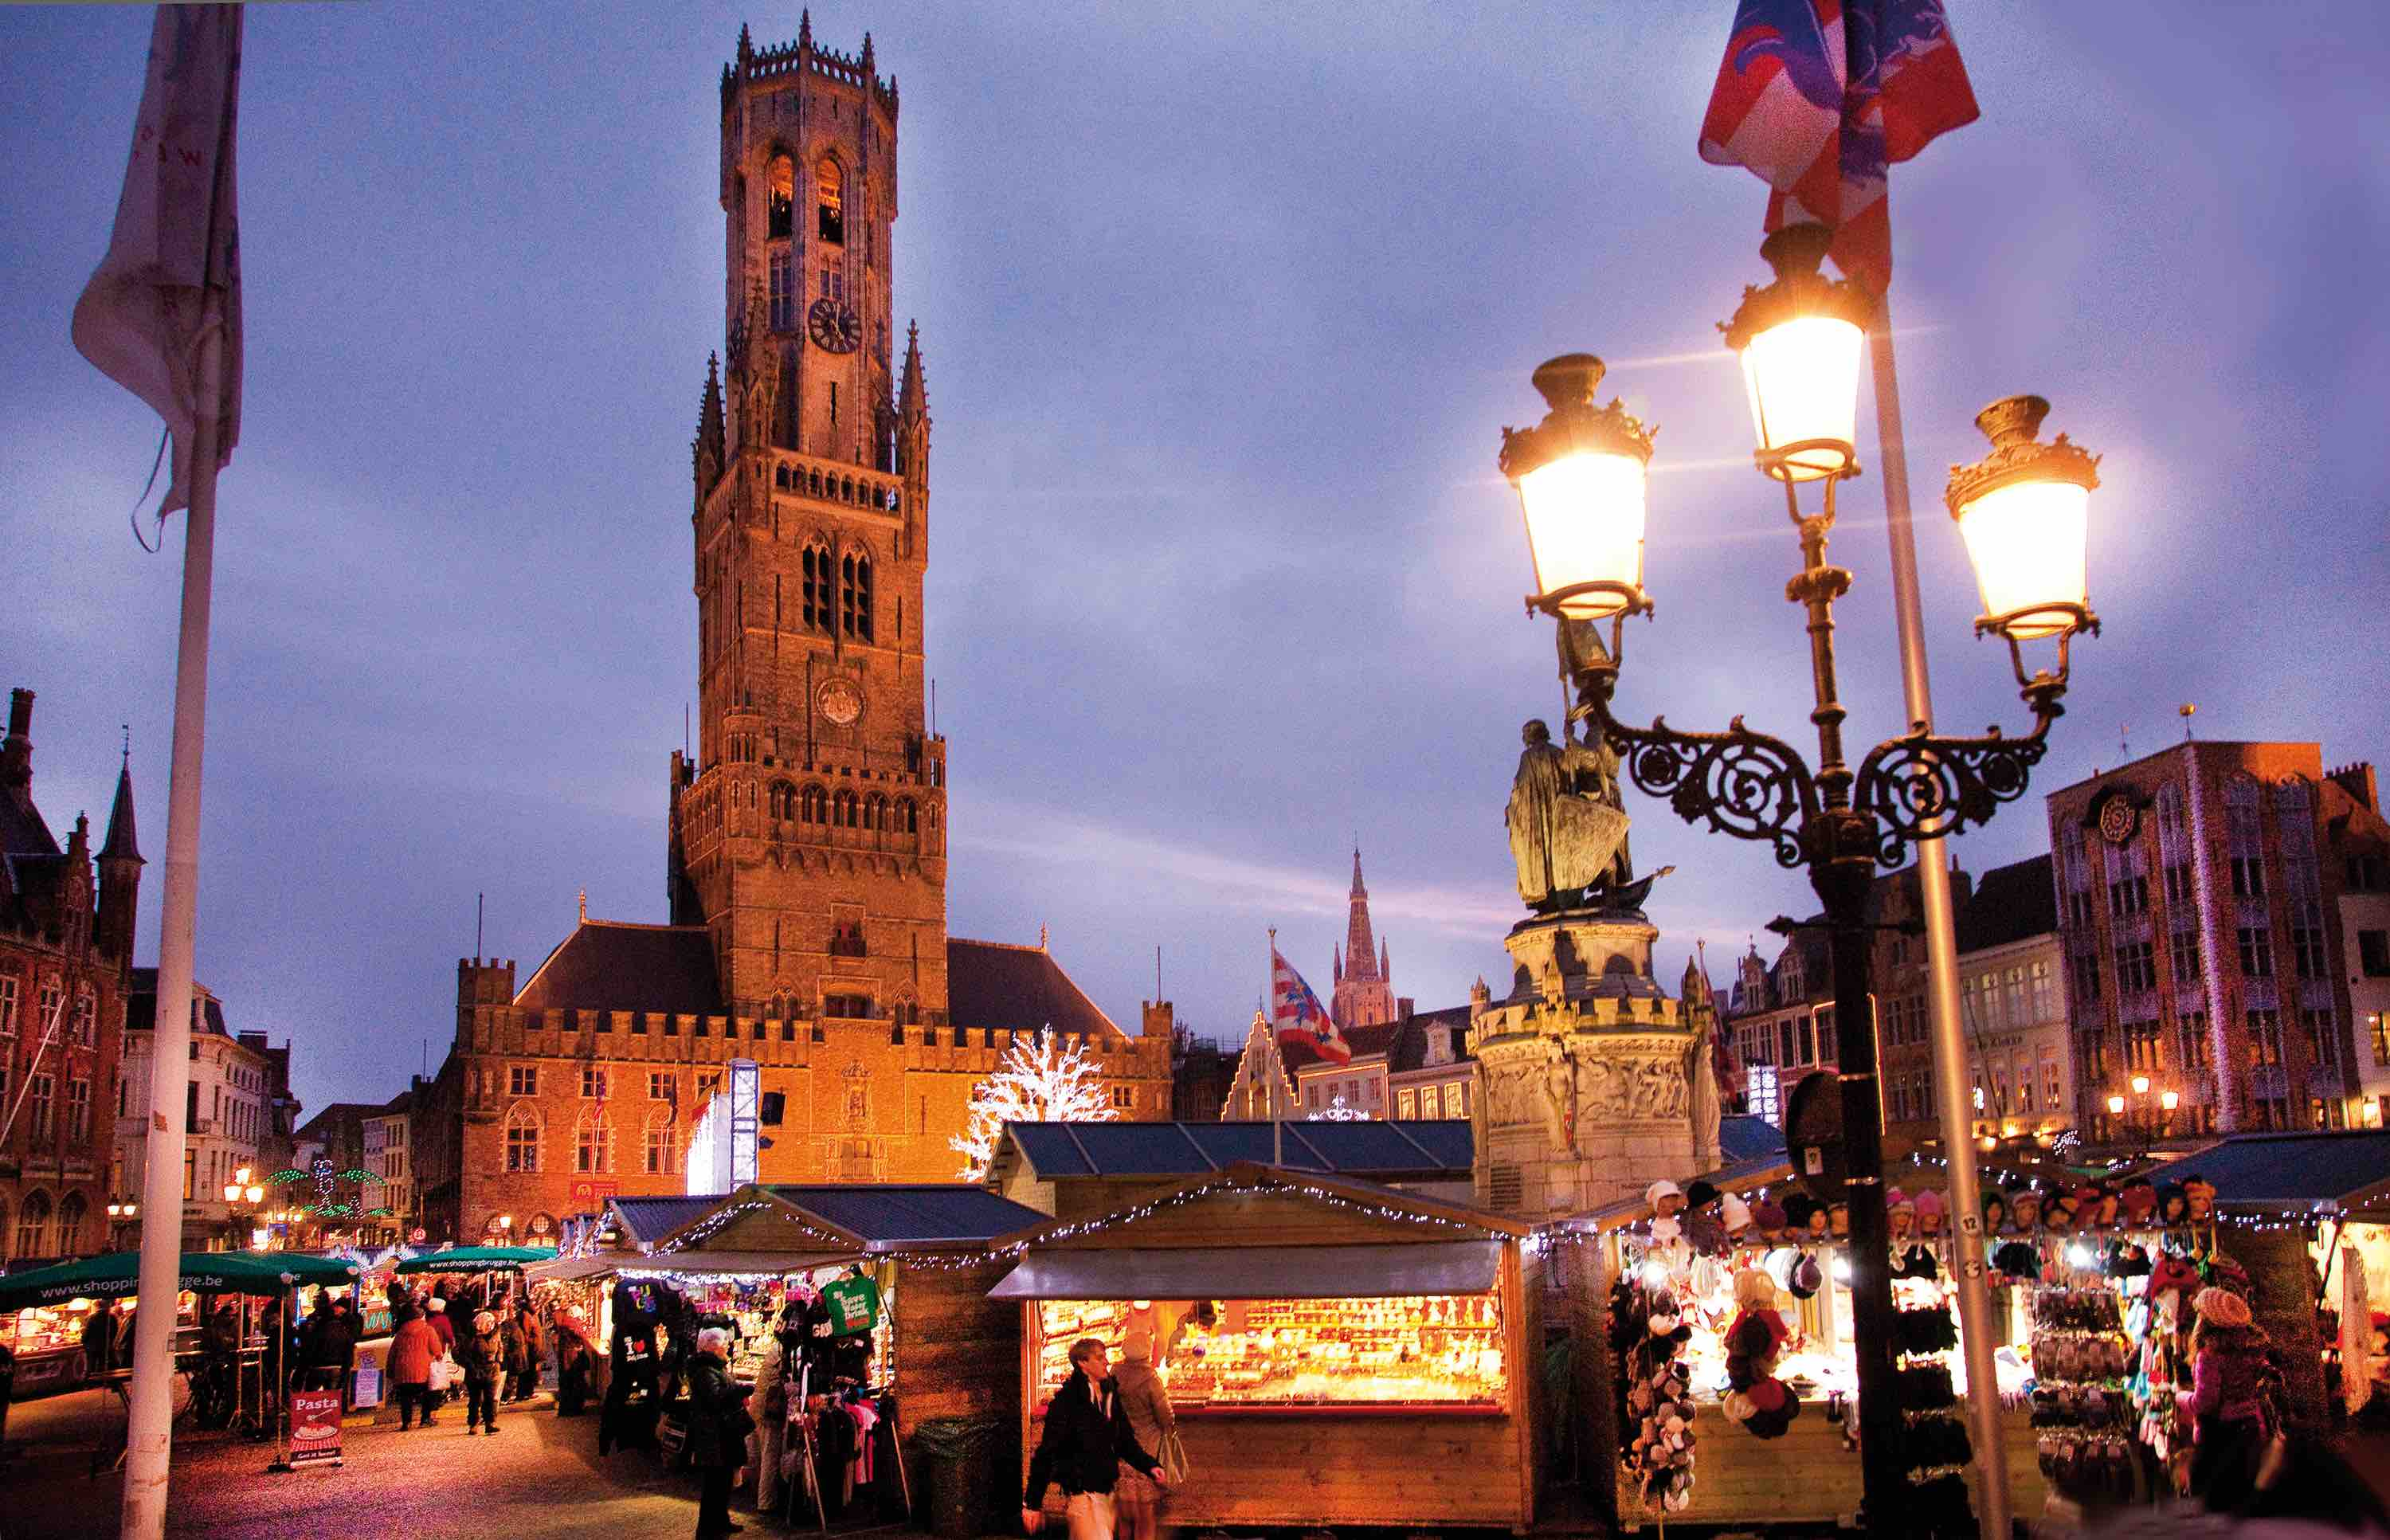 19 Photos To Make You Fall In Love With Bruges' Winter Charm